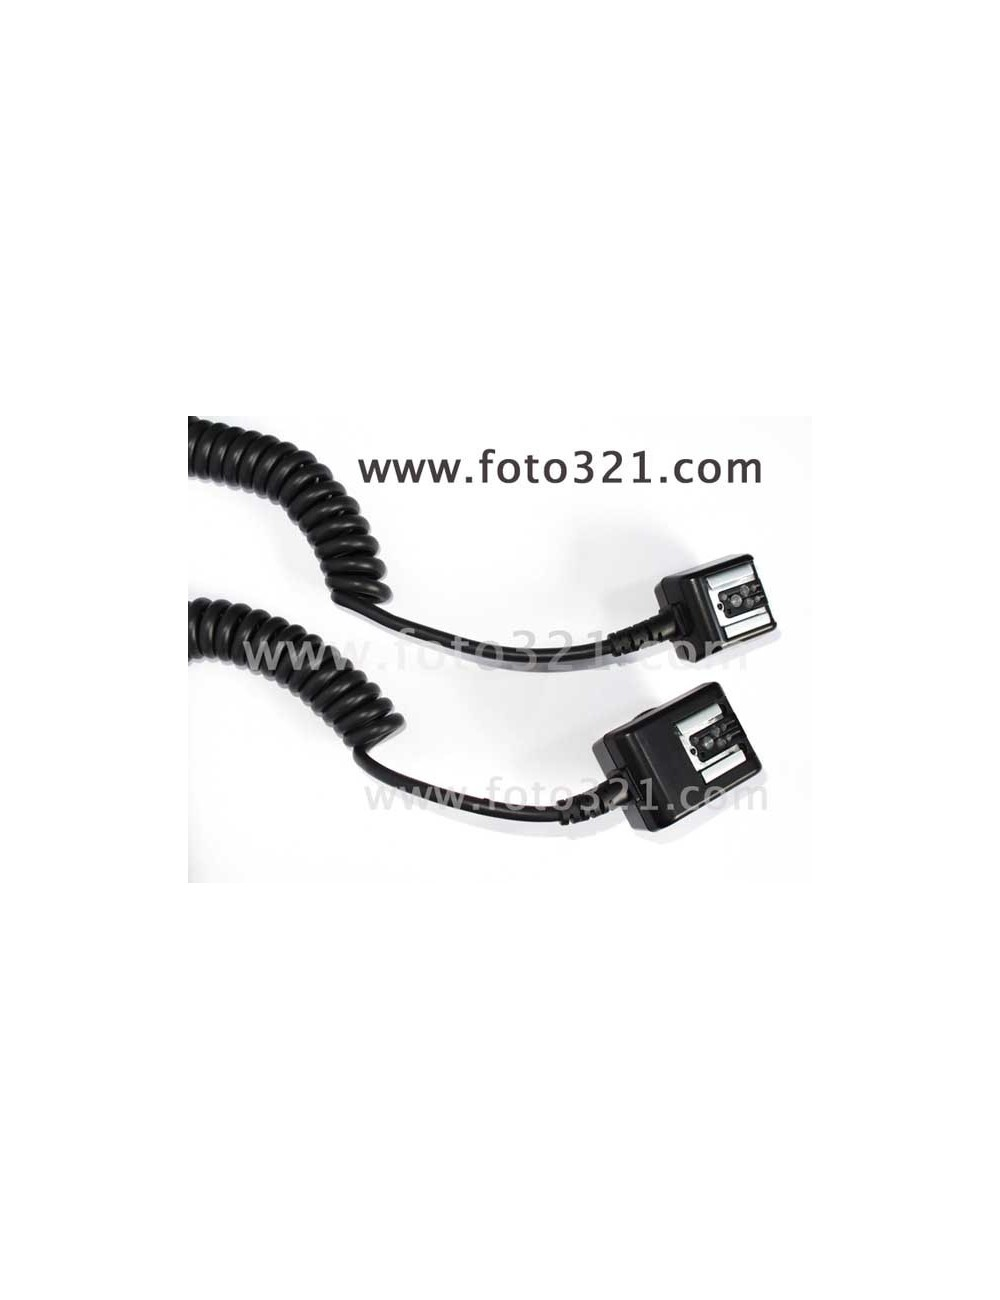 Quantum Instruments 540 Sync-Out Cable para Qflash